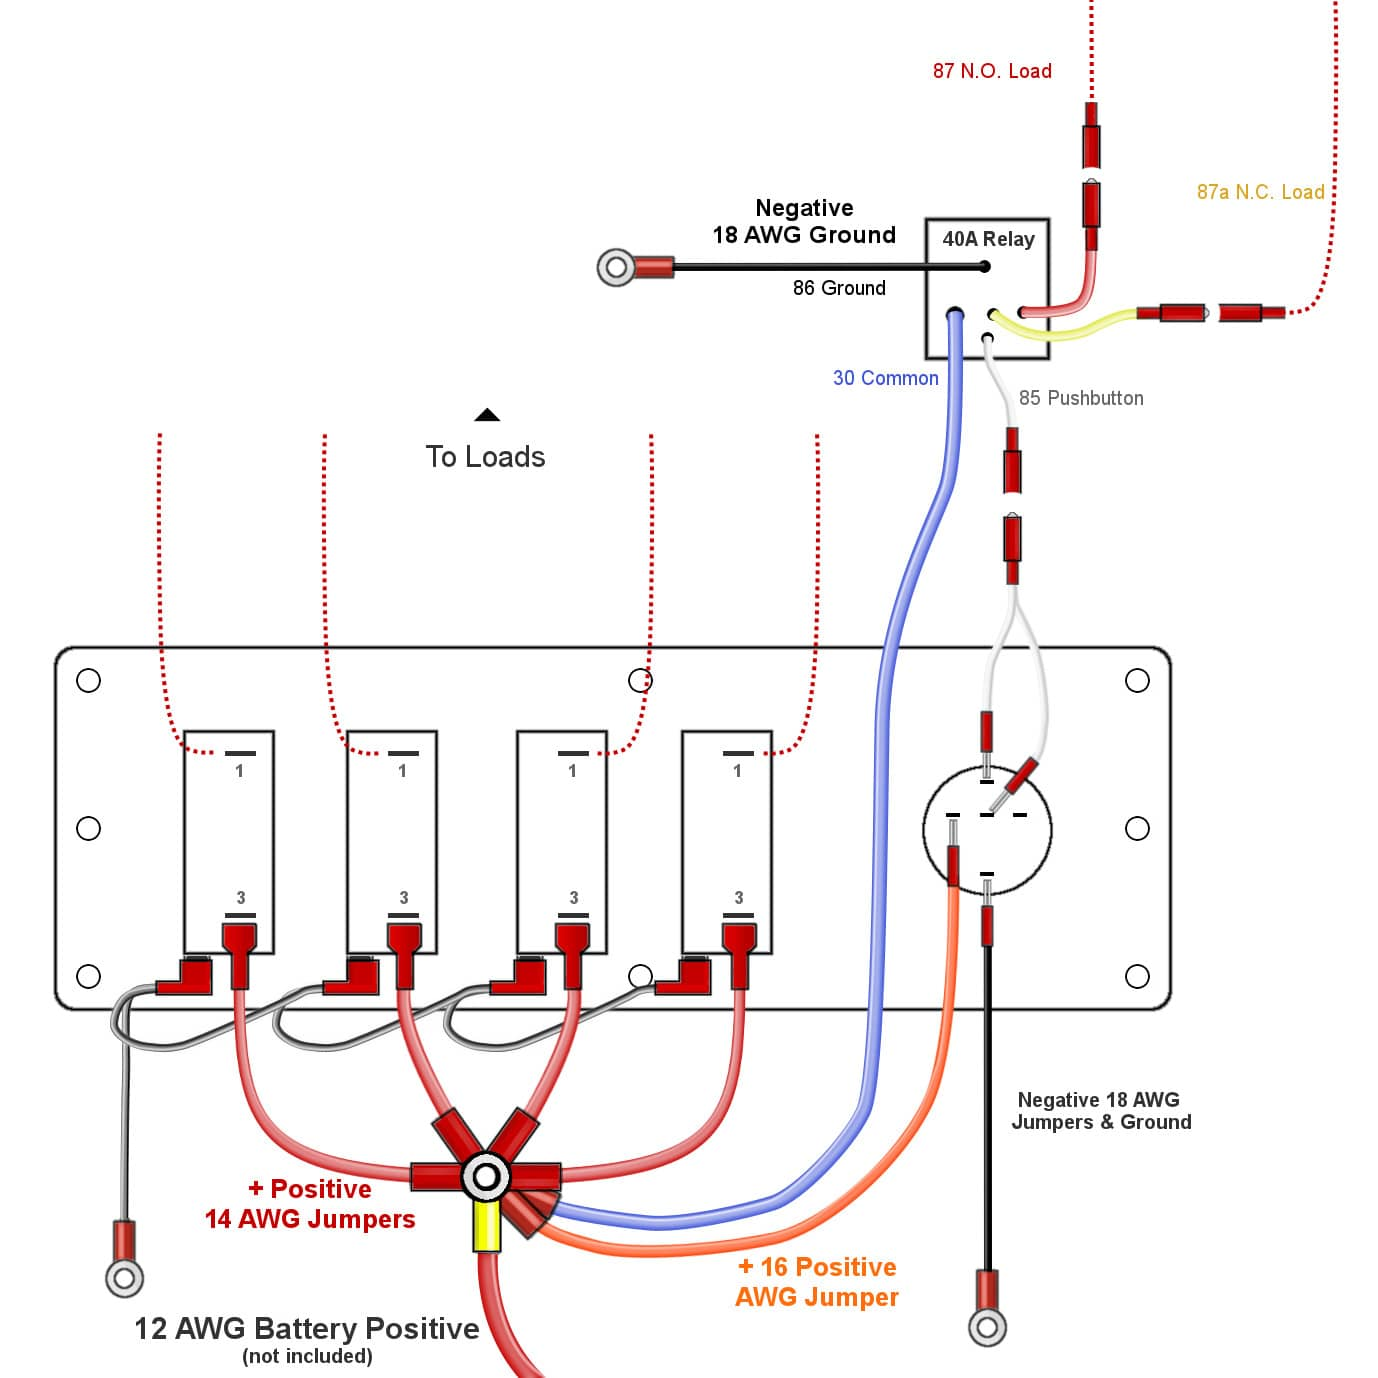 hight resolution of installation manual wiring diagram electrical scheme